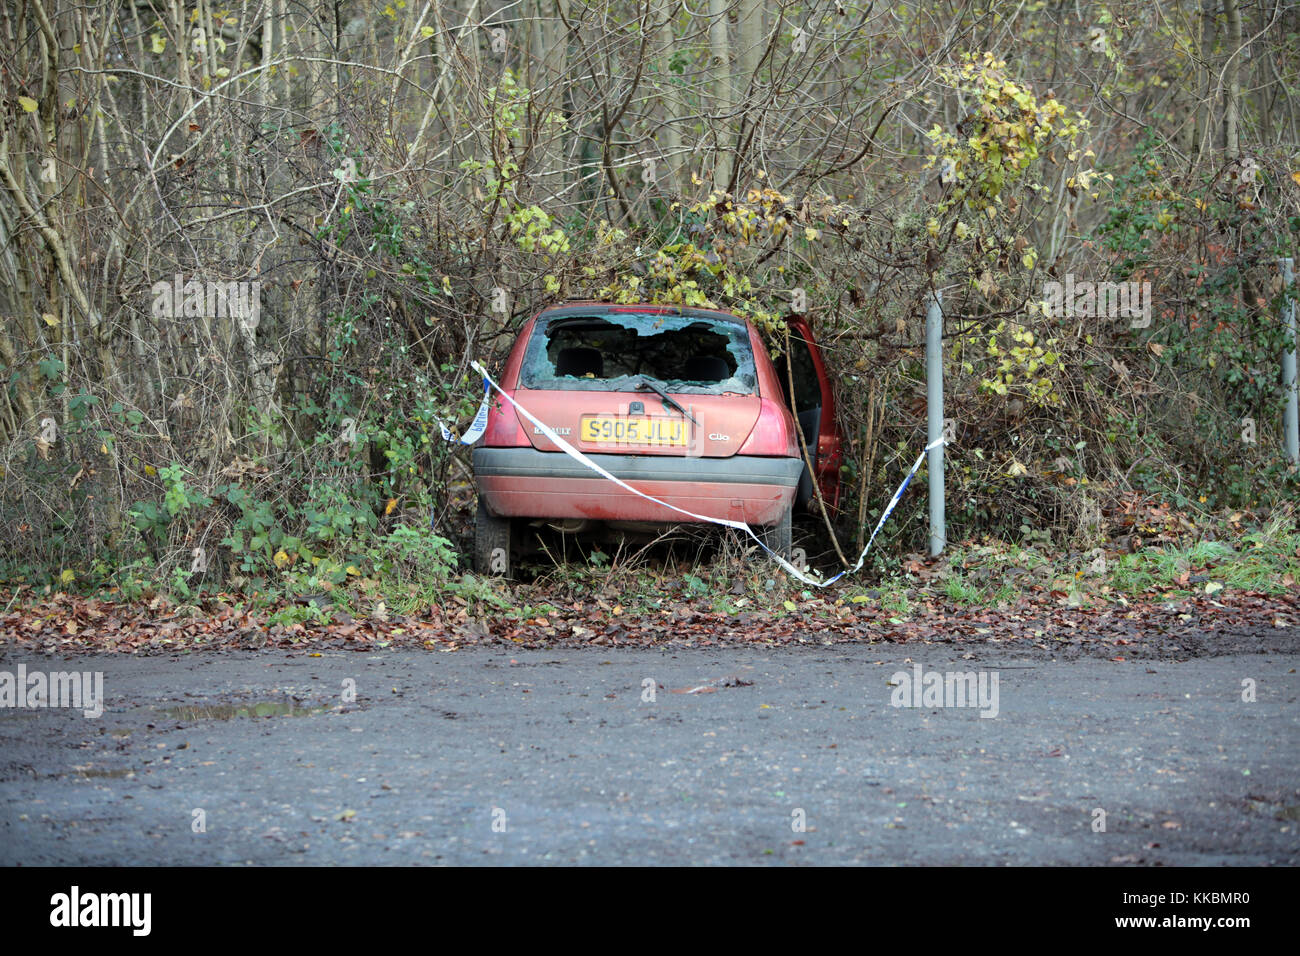 An abandoned car that crashed into a hedge on a rural road in Wiltshire England. Stock Photo